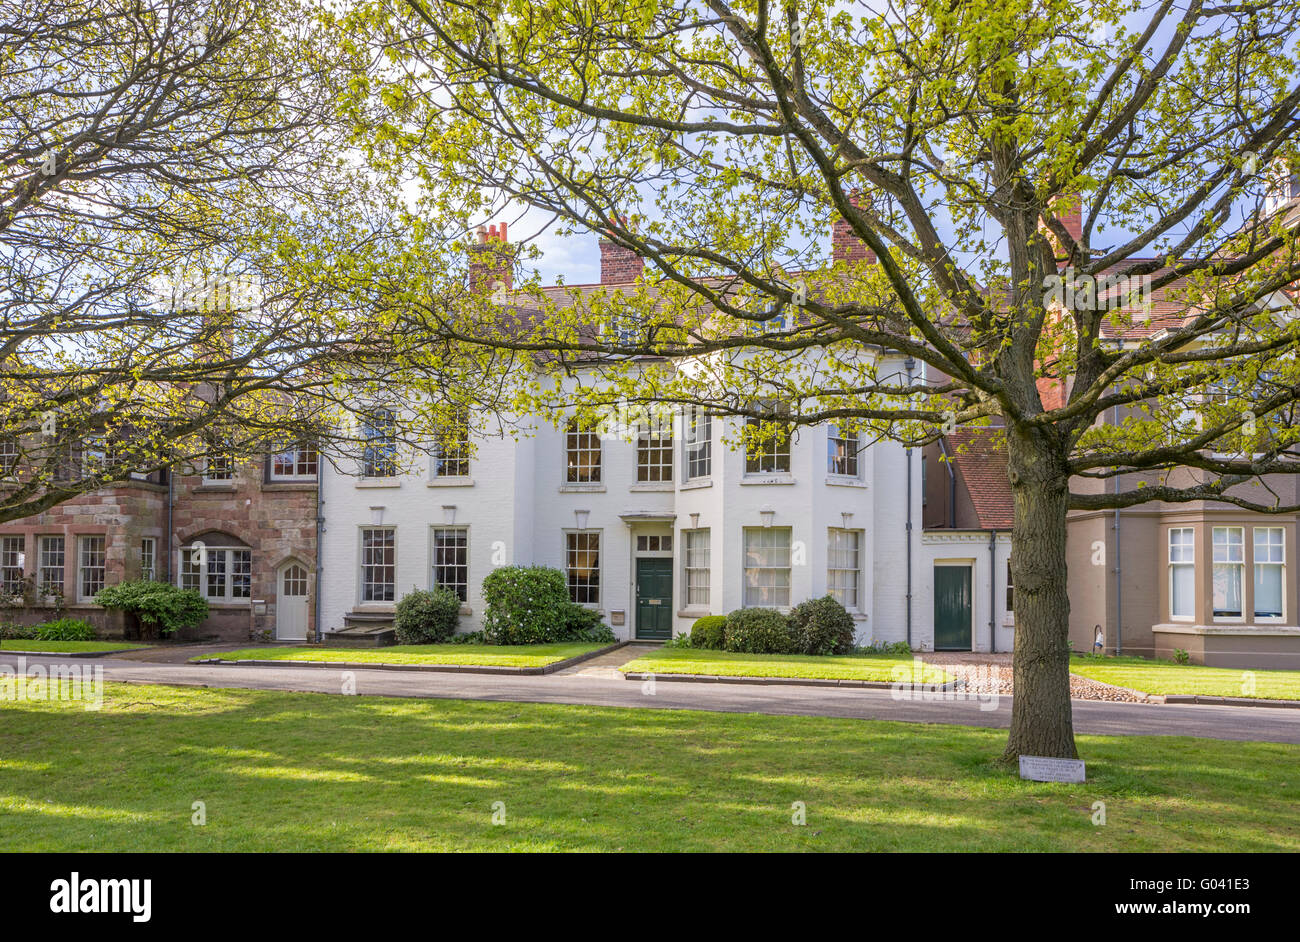 College Green and King's School, Worcester, Worcestershire, England, UK - Stock Image